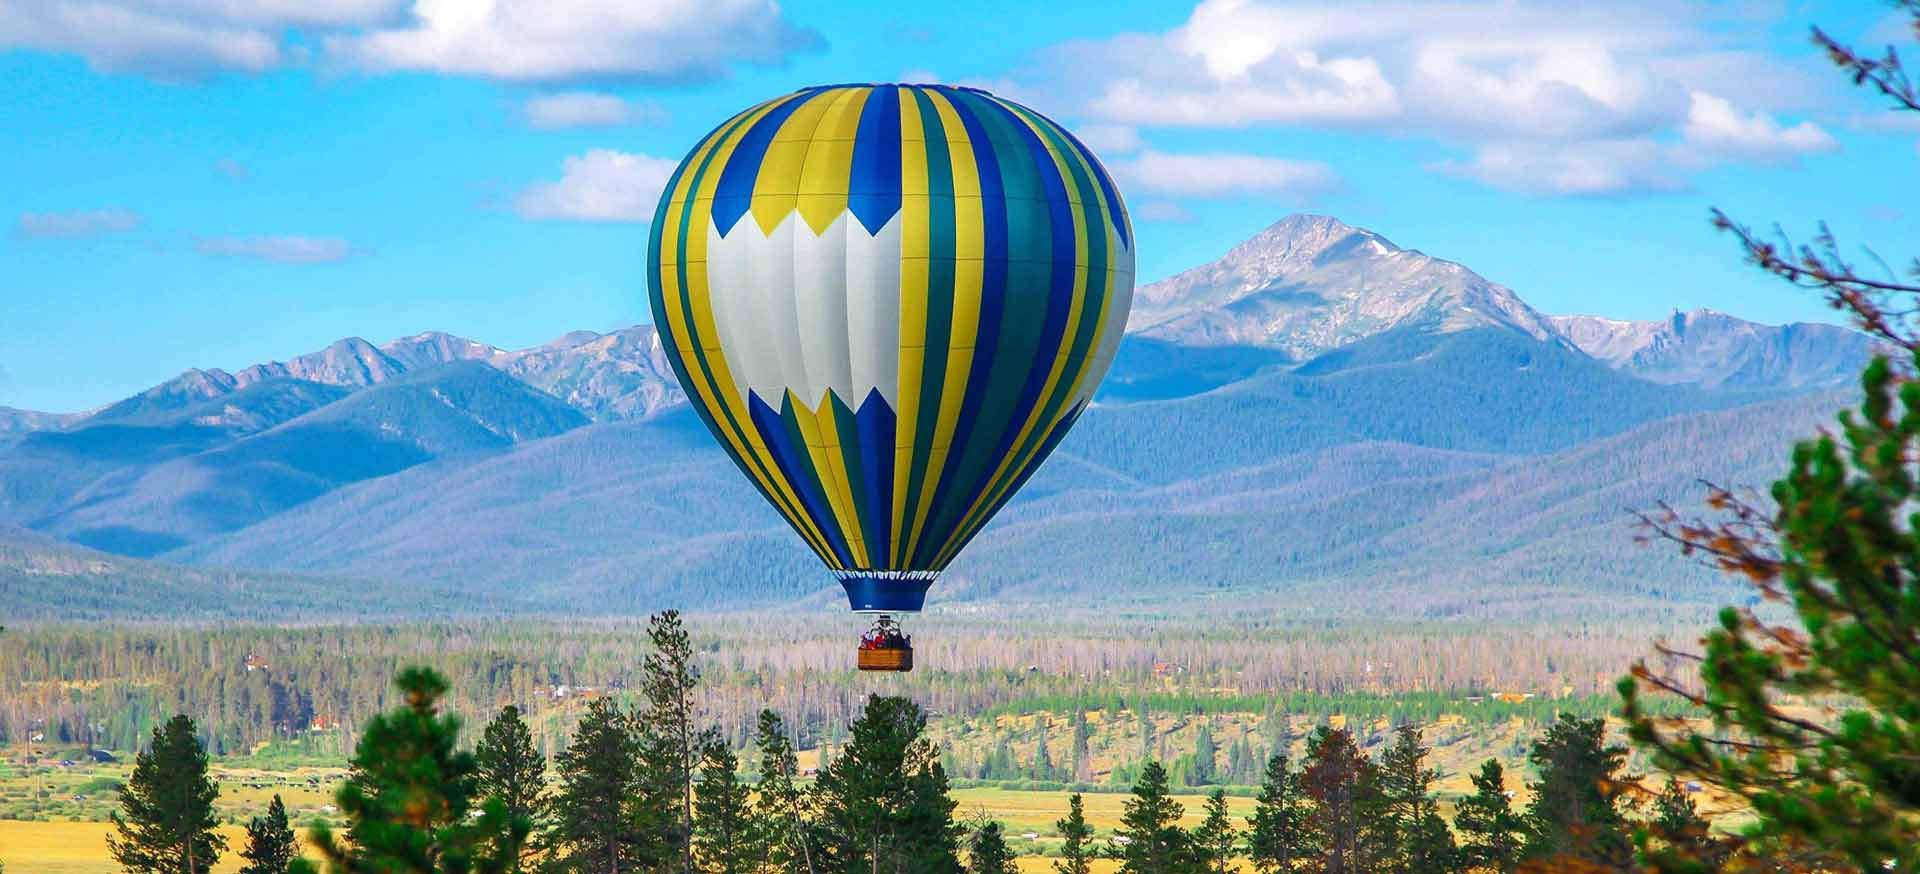 Hot Air Balloon by the Rocky Mountains.